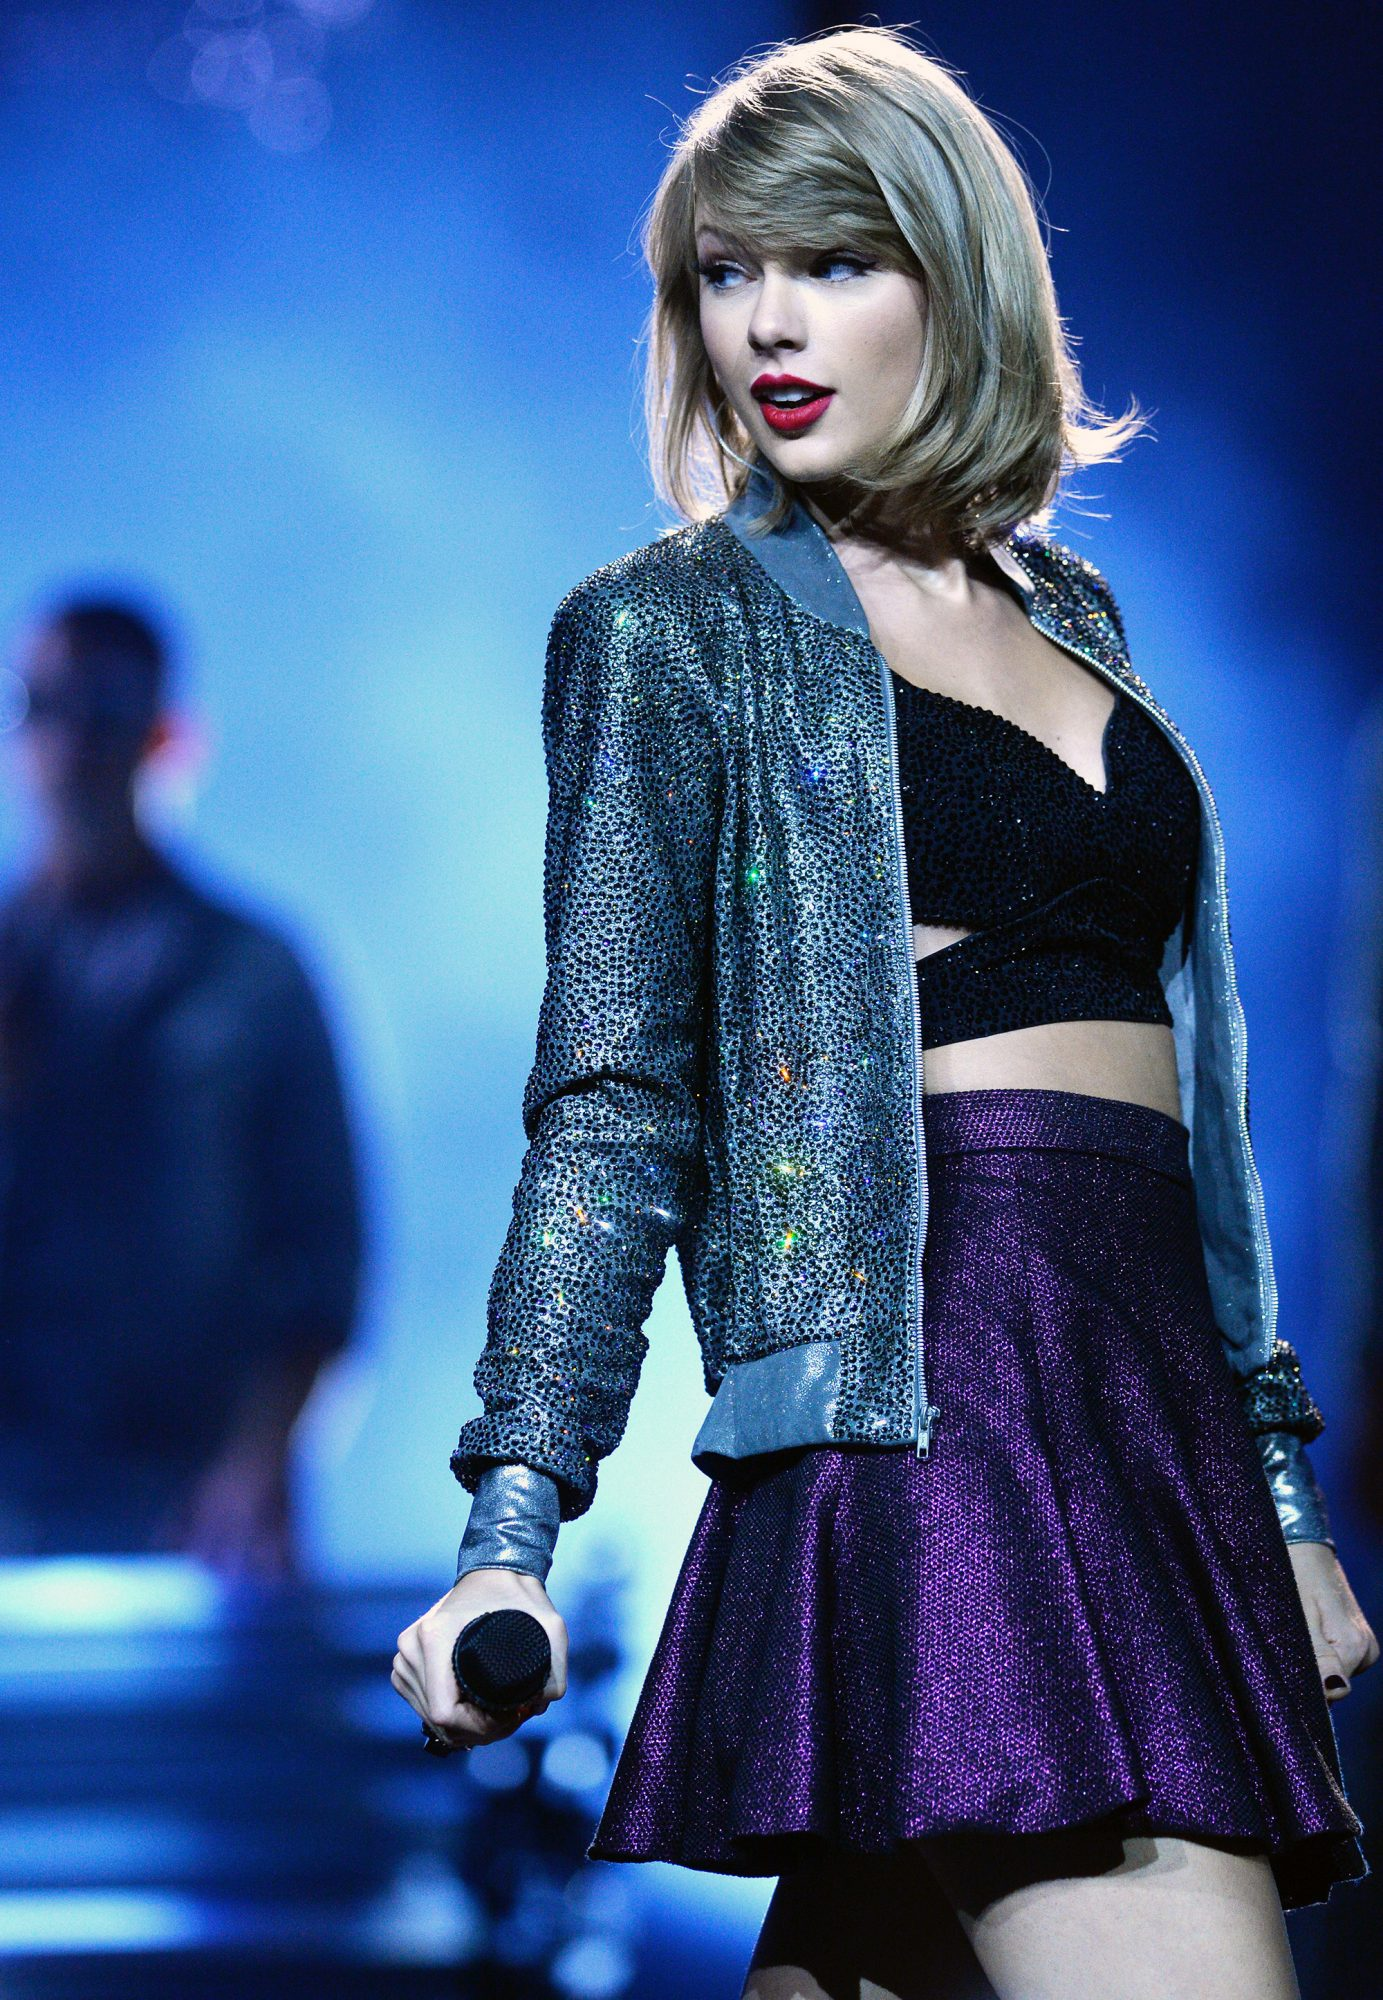 Taylor Swift The 1989 World Tour Live In Cologne - Night 1